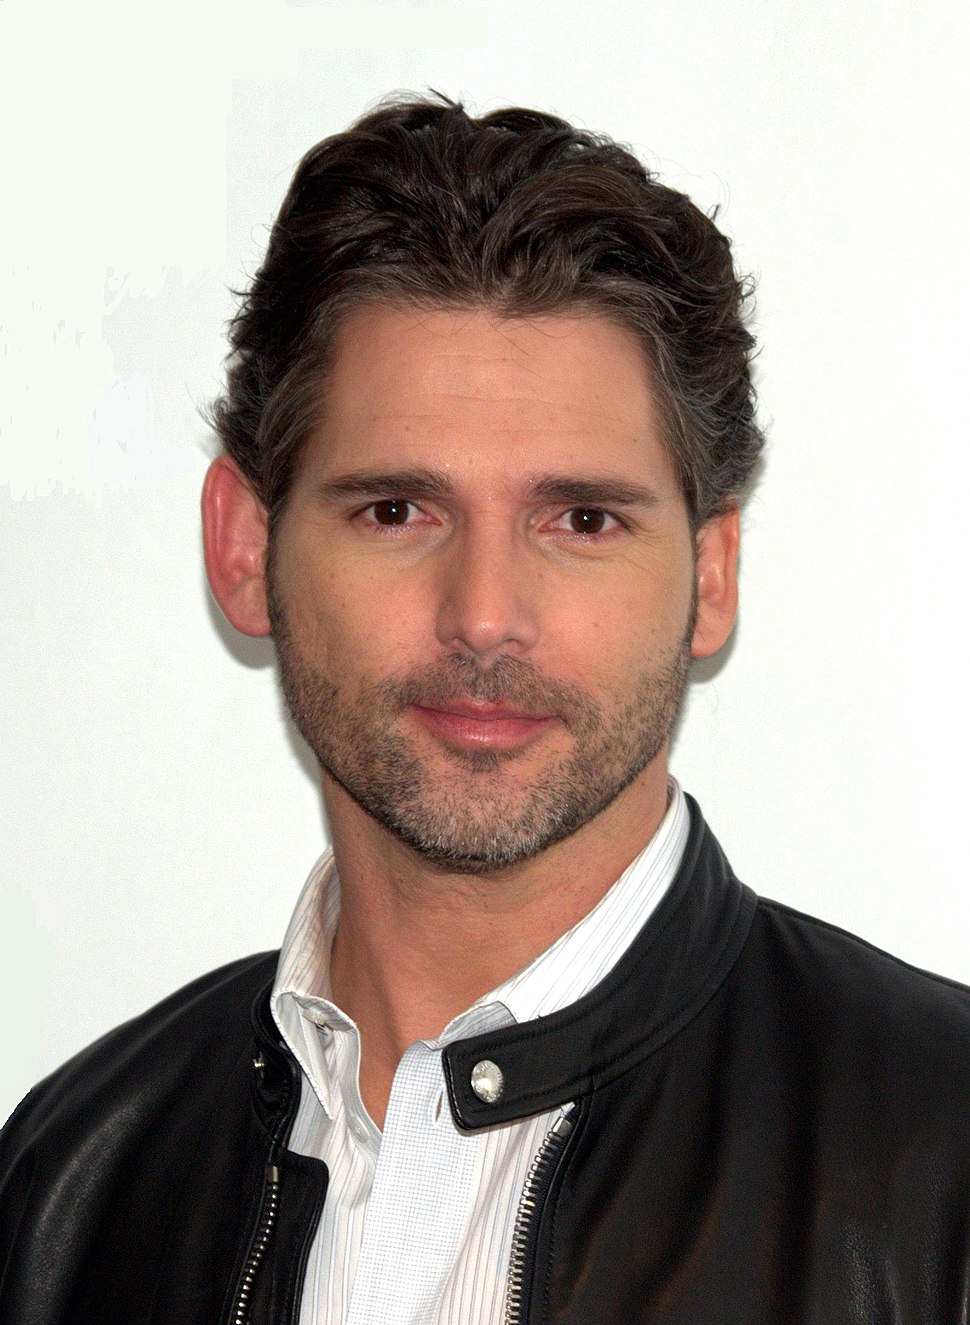 Eric Bana at the 2009 Tribeca Film Festival